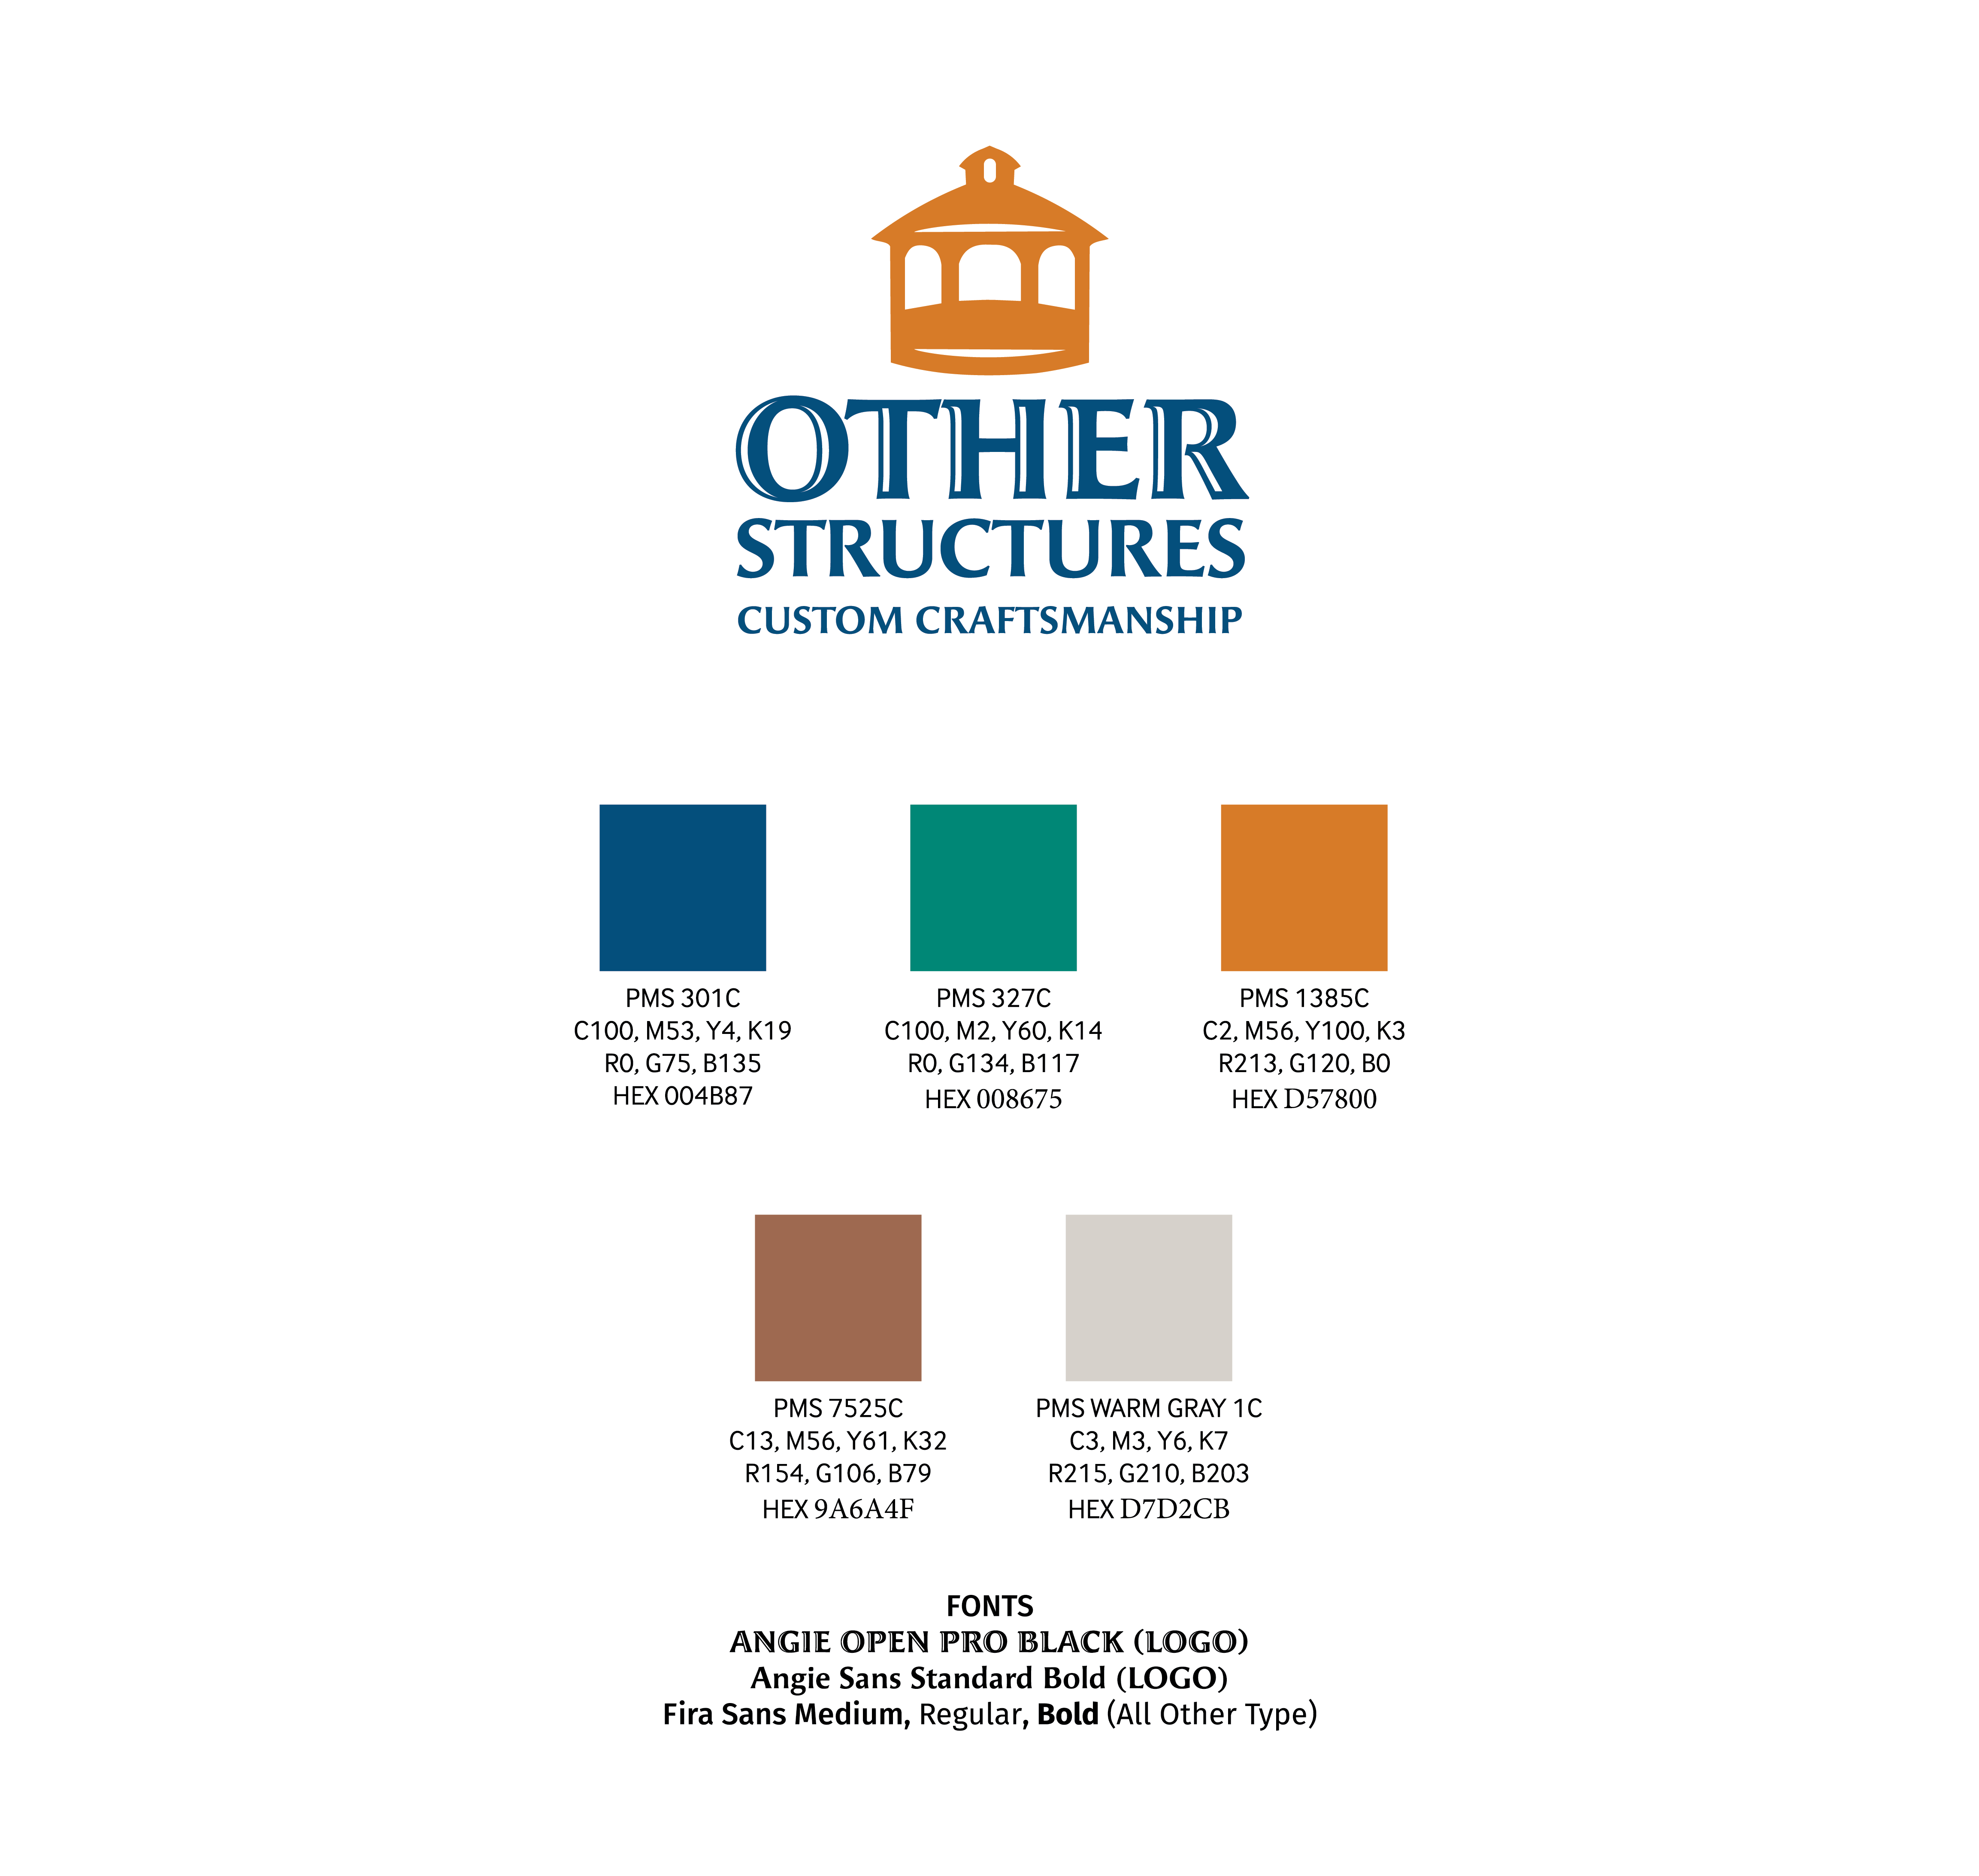 Other Structures Basic Brand Guidelines